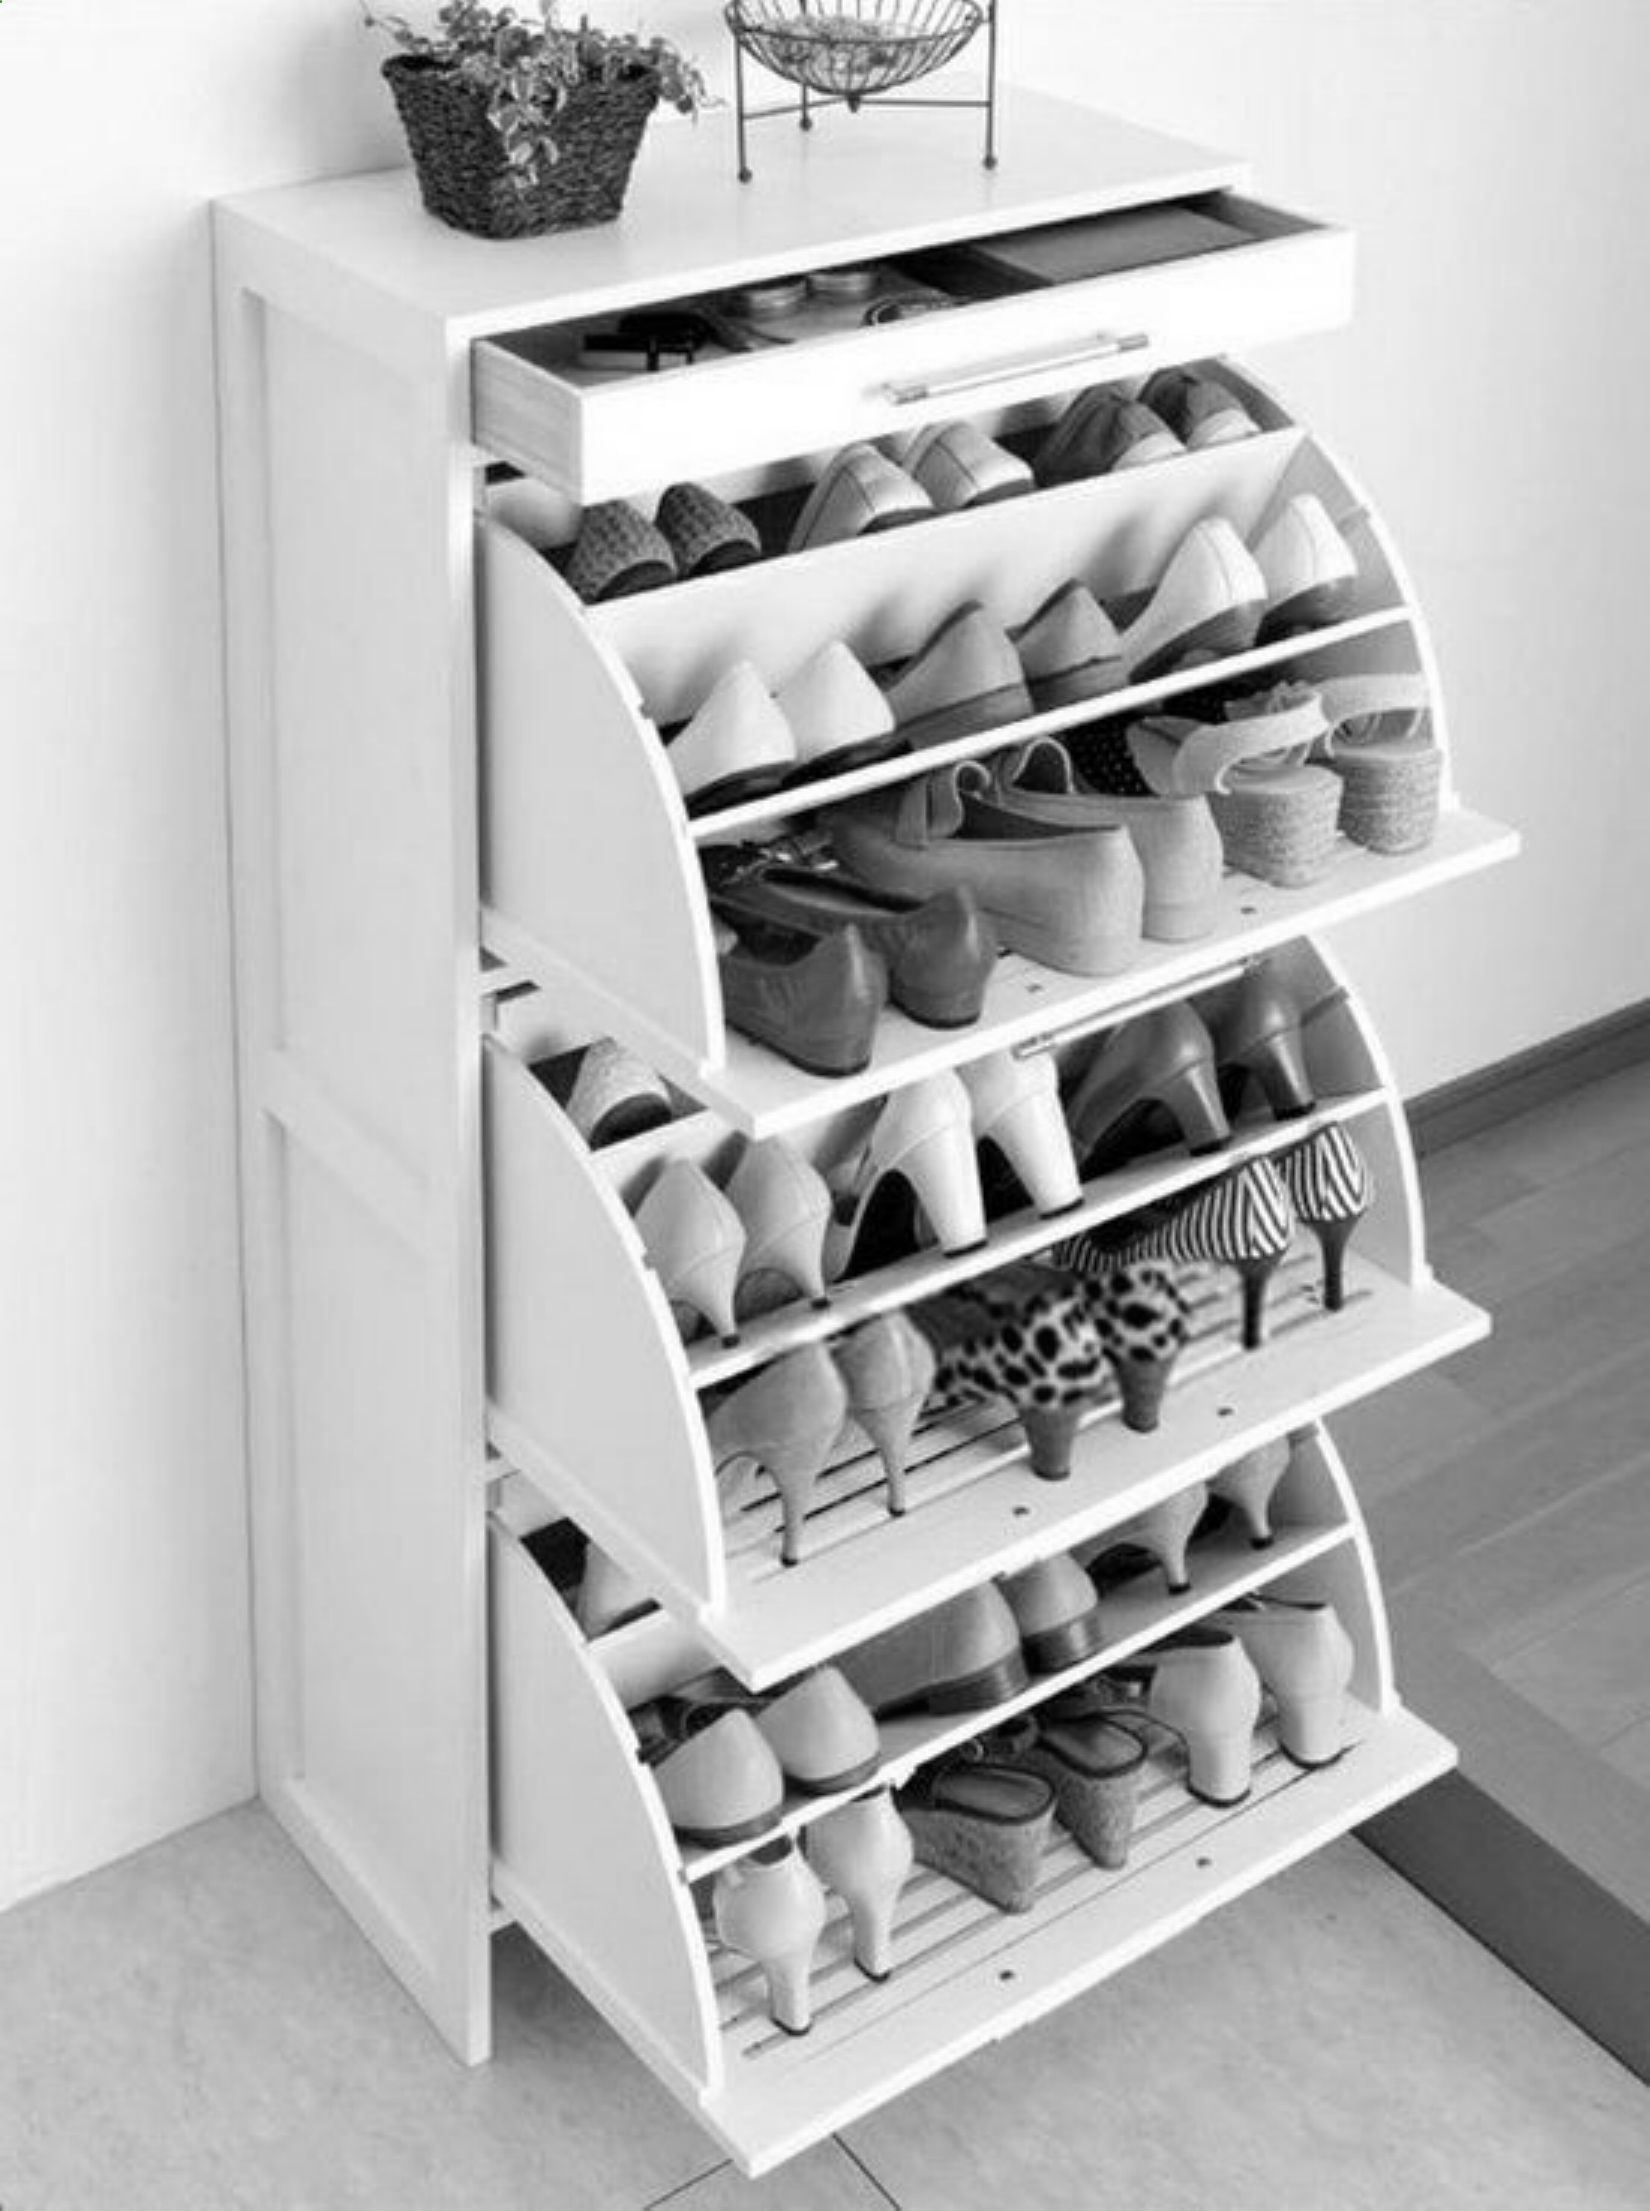 Ikea Shoe Drawers Hemnes Collection Holds 27 Pairs How Did I Not Know